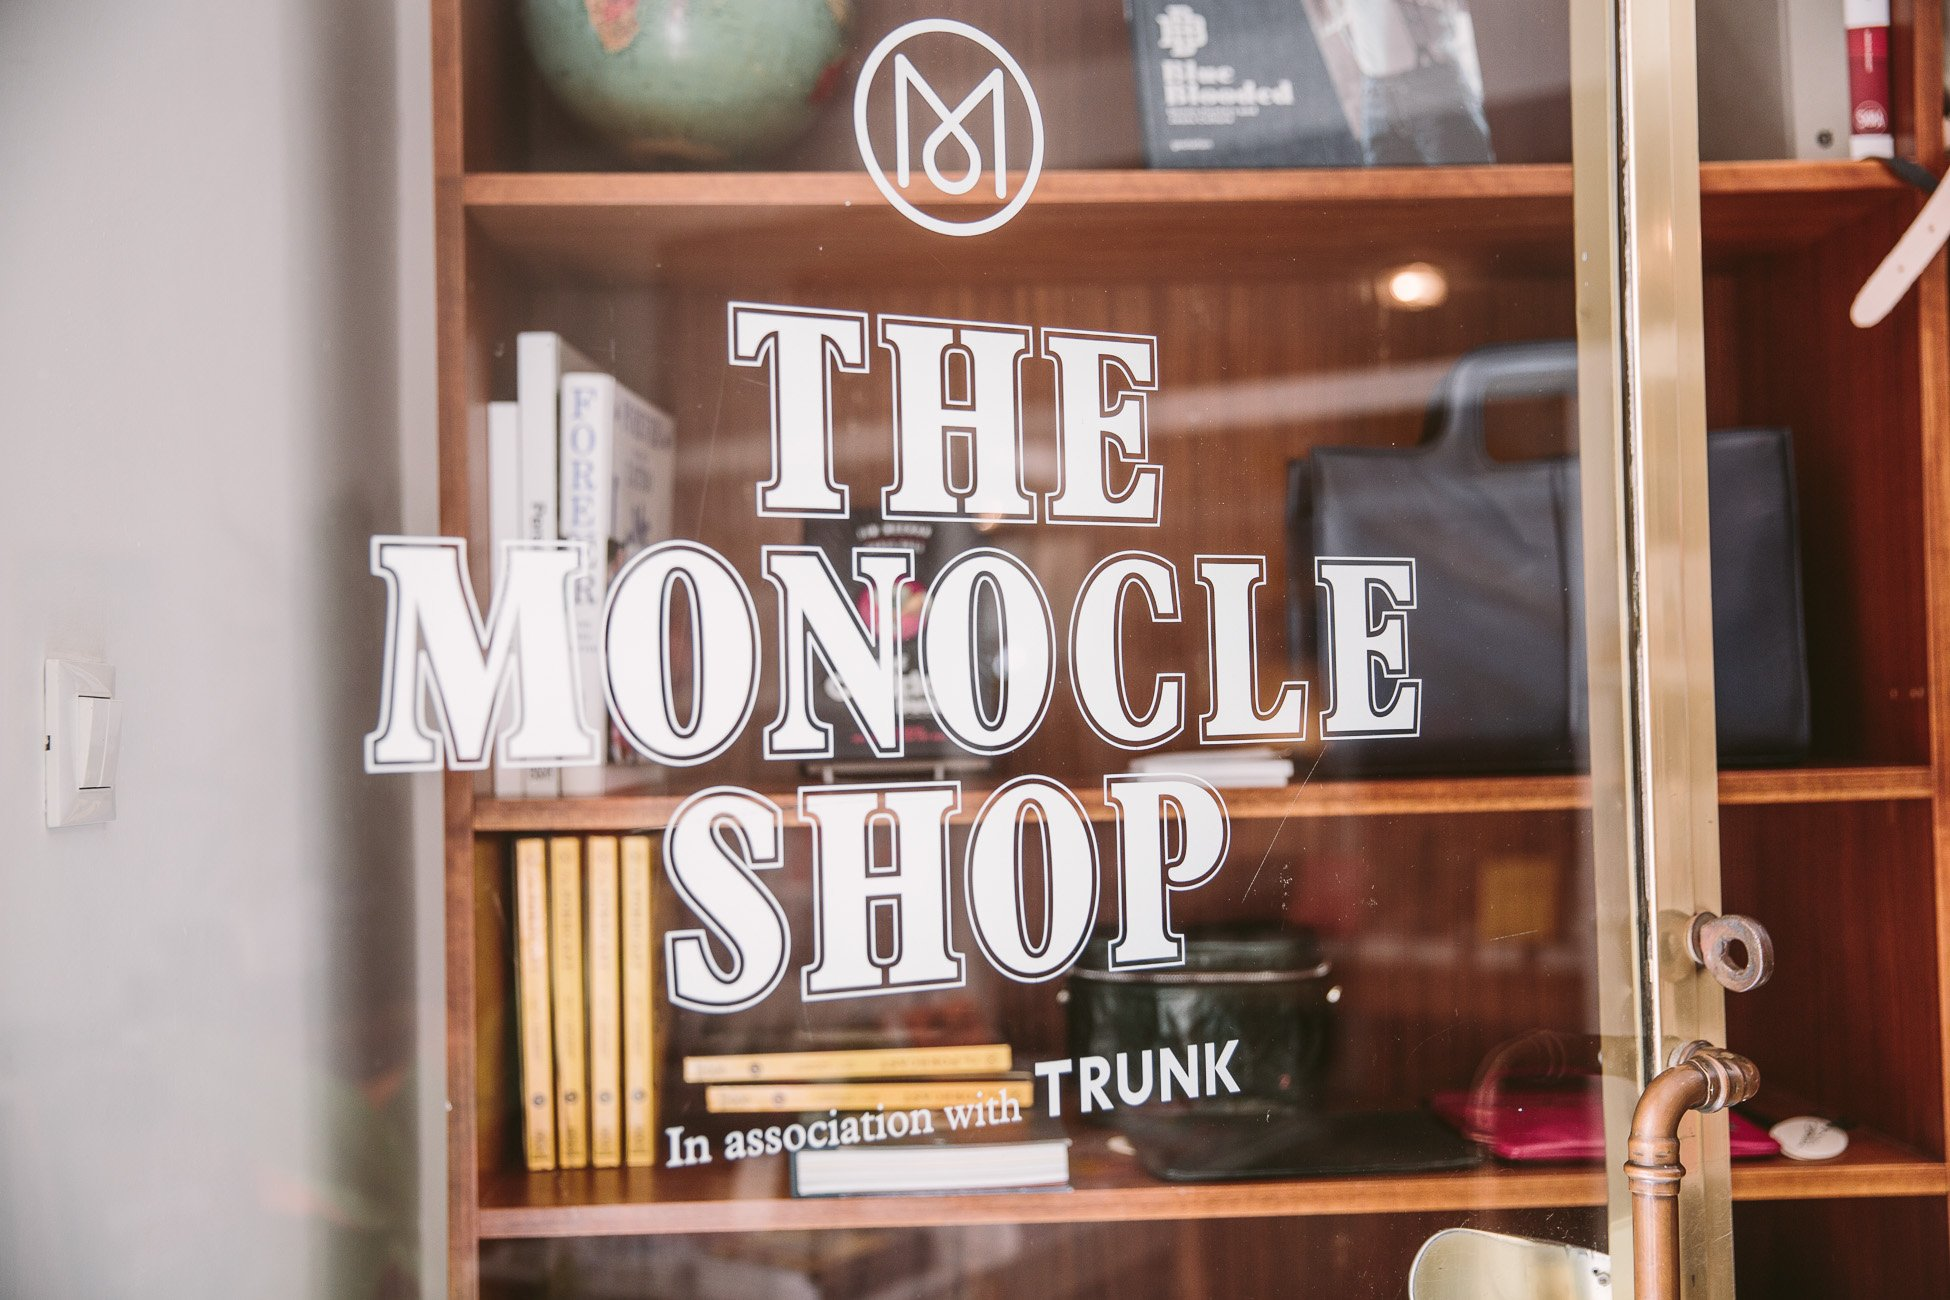 Monocle Shop in Meran